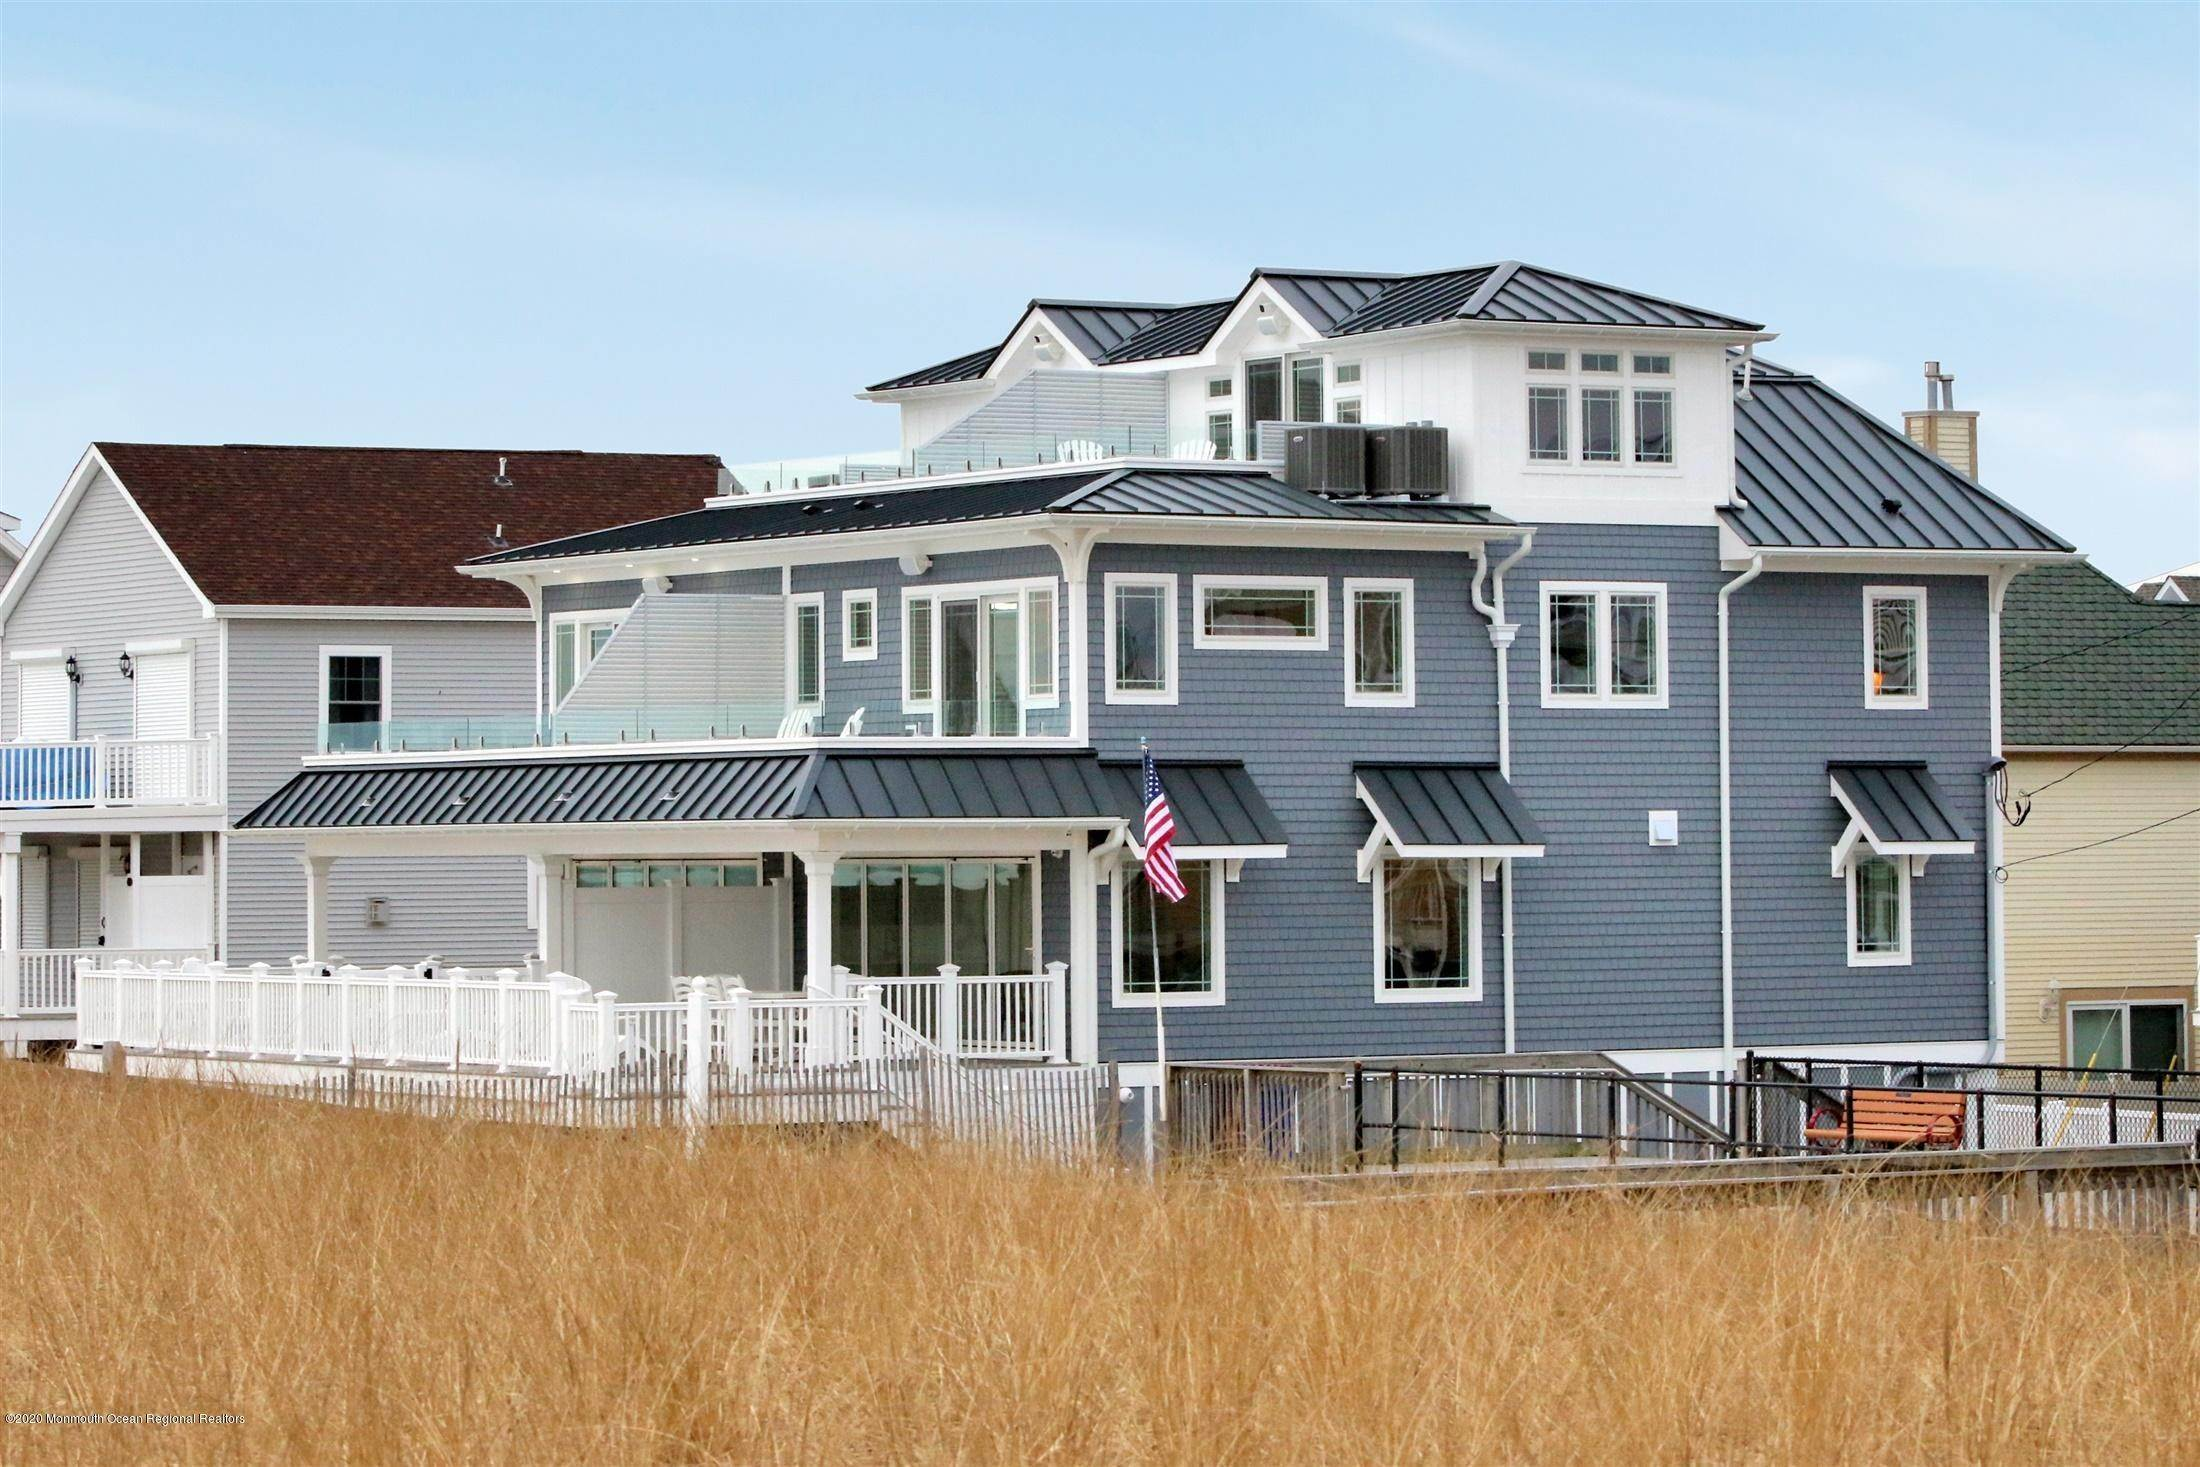 39. Single Family Home for Rent at 1728 Oceanfront Ortley Beach, New Jersey, 08751 United States